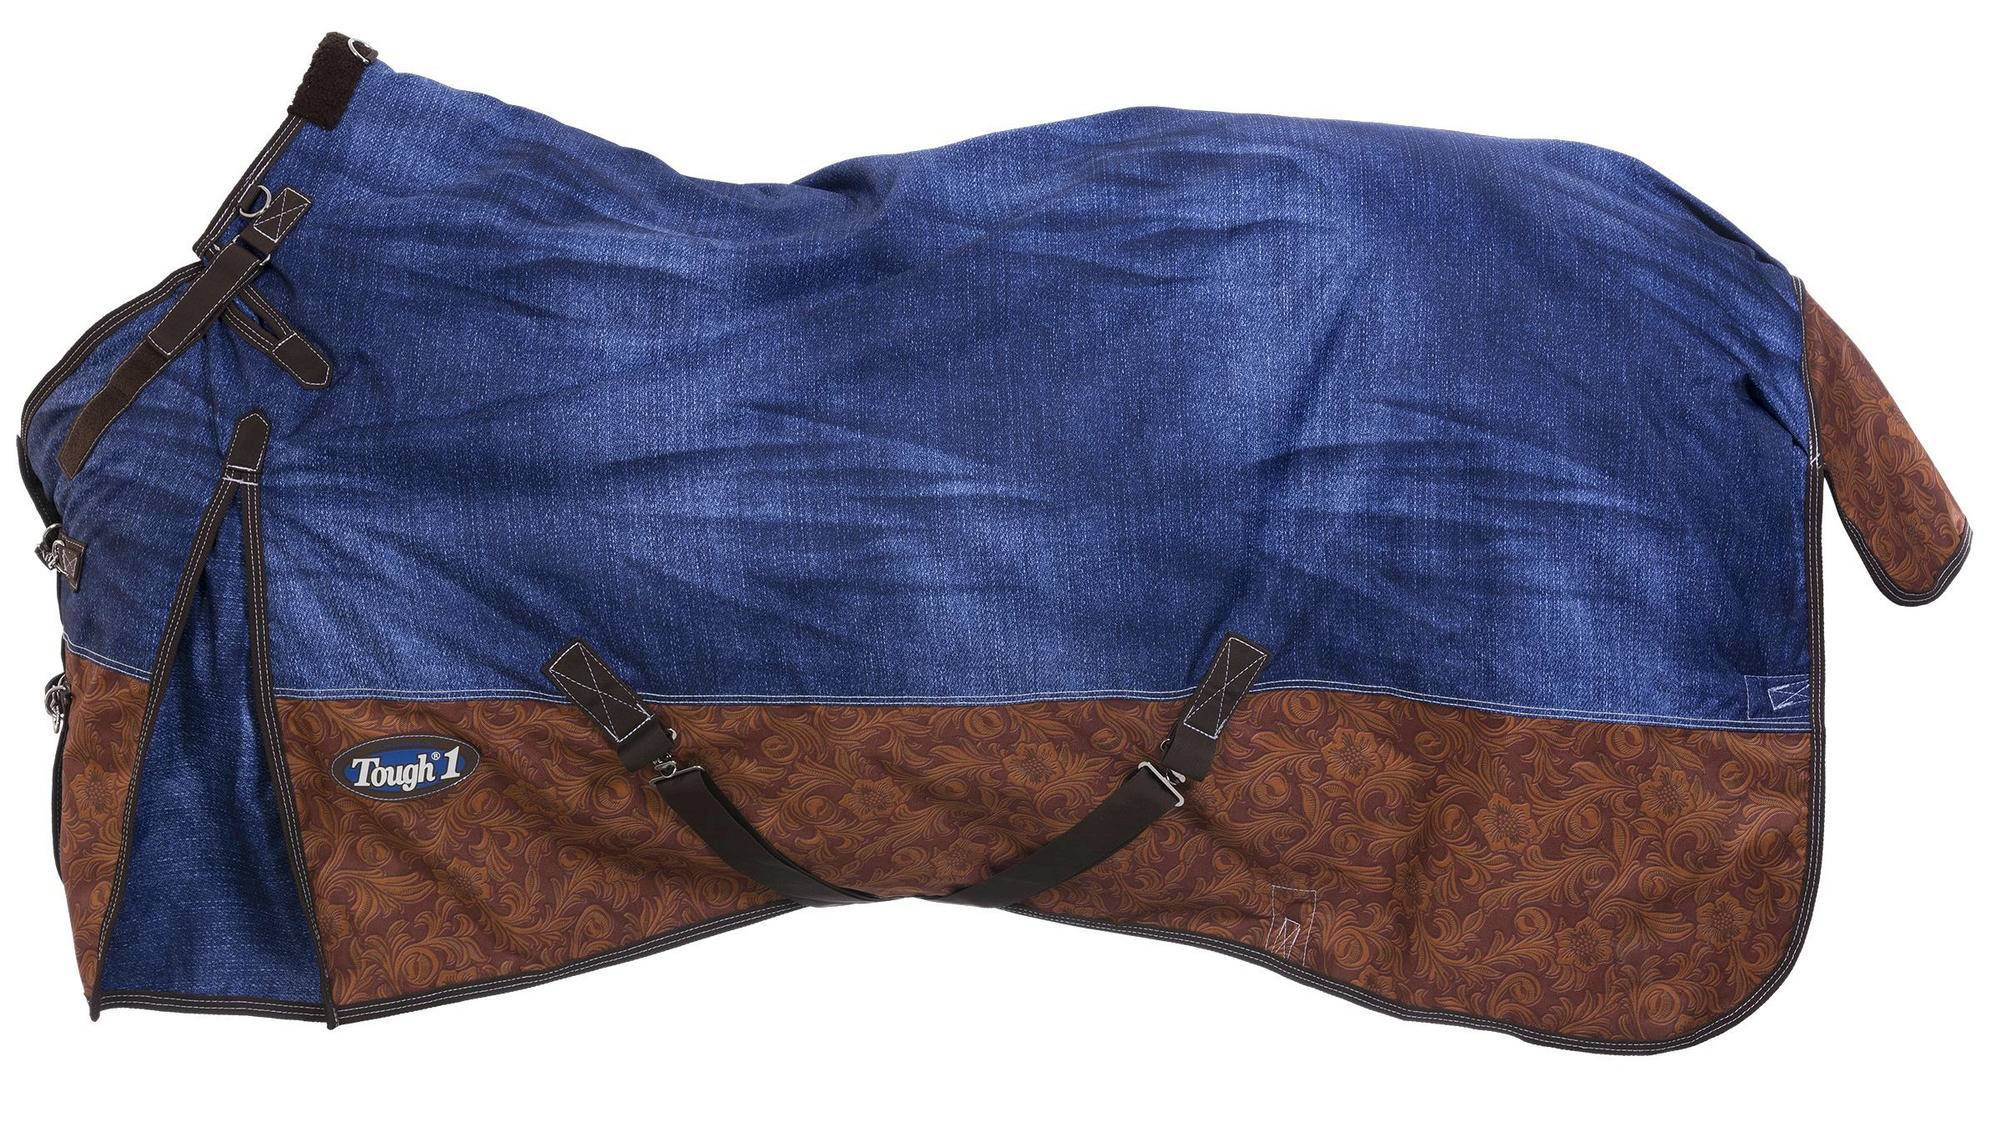 Outlet - Tough 1 1200D Waterproof Poly Snuggit Turnout Blanket- 250g fill, 72, Denim/Brown Tooled Leather